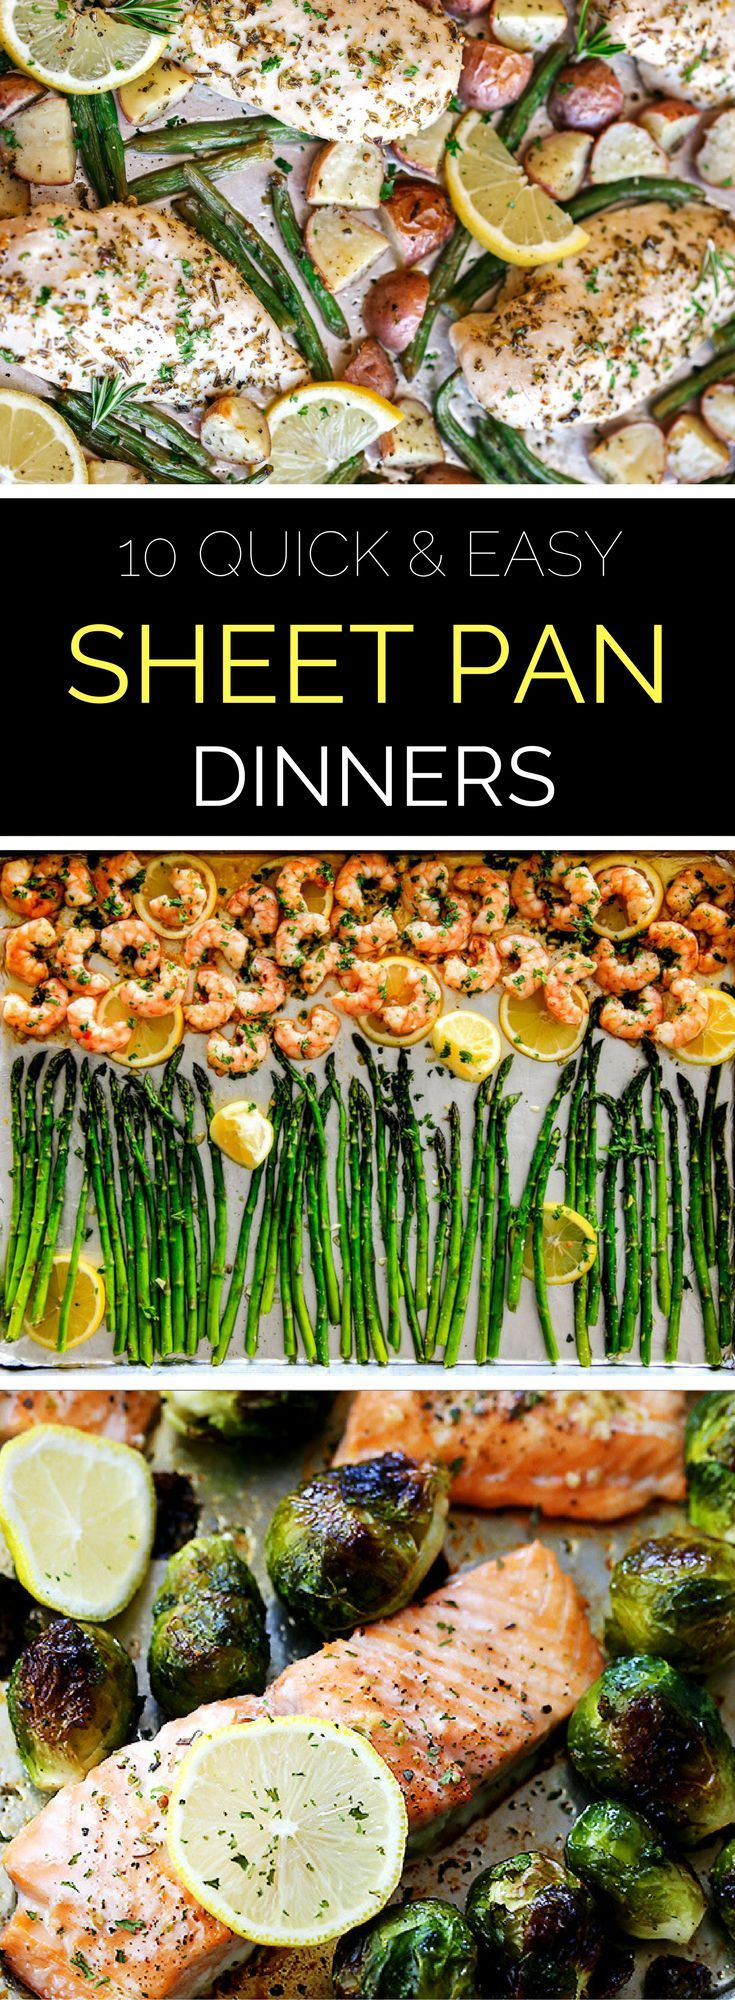 10 Quick and Easy Sheet Pan Dinners